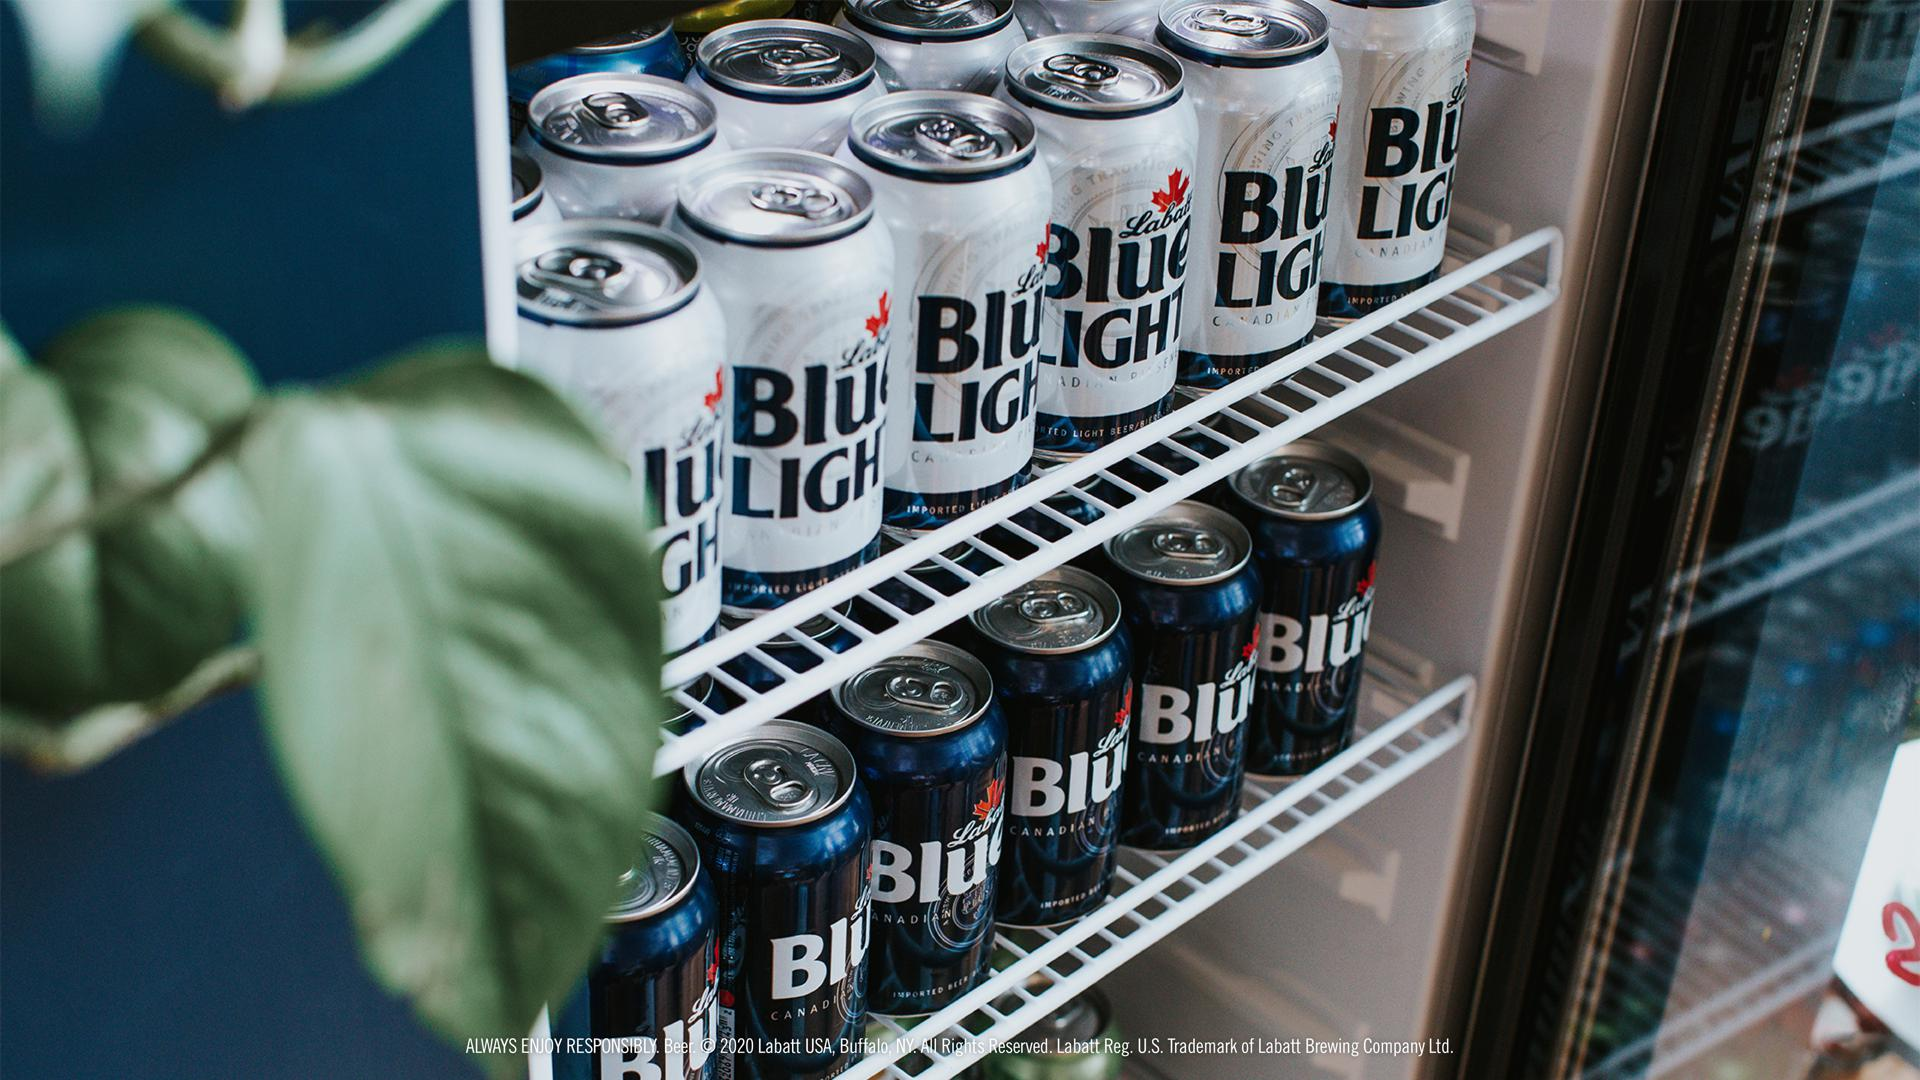 Blue and Blue Light Cans in a Cooler Background